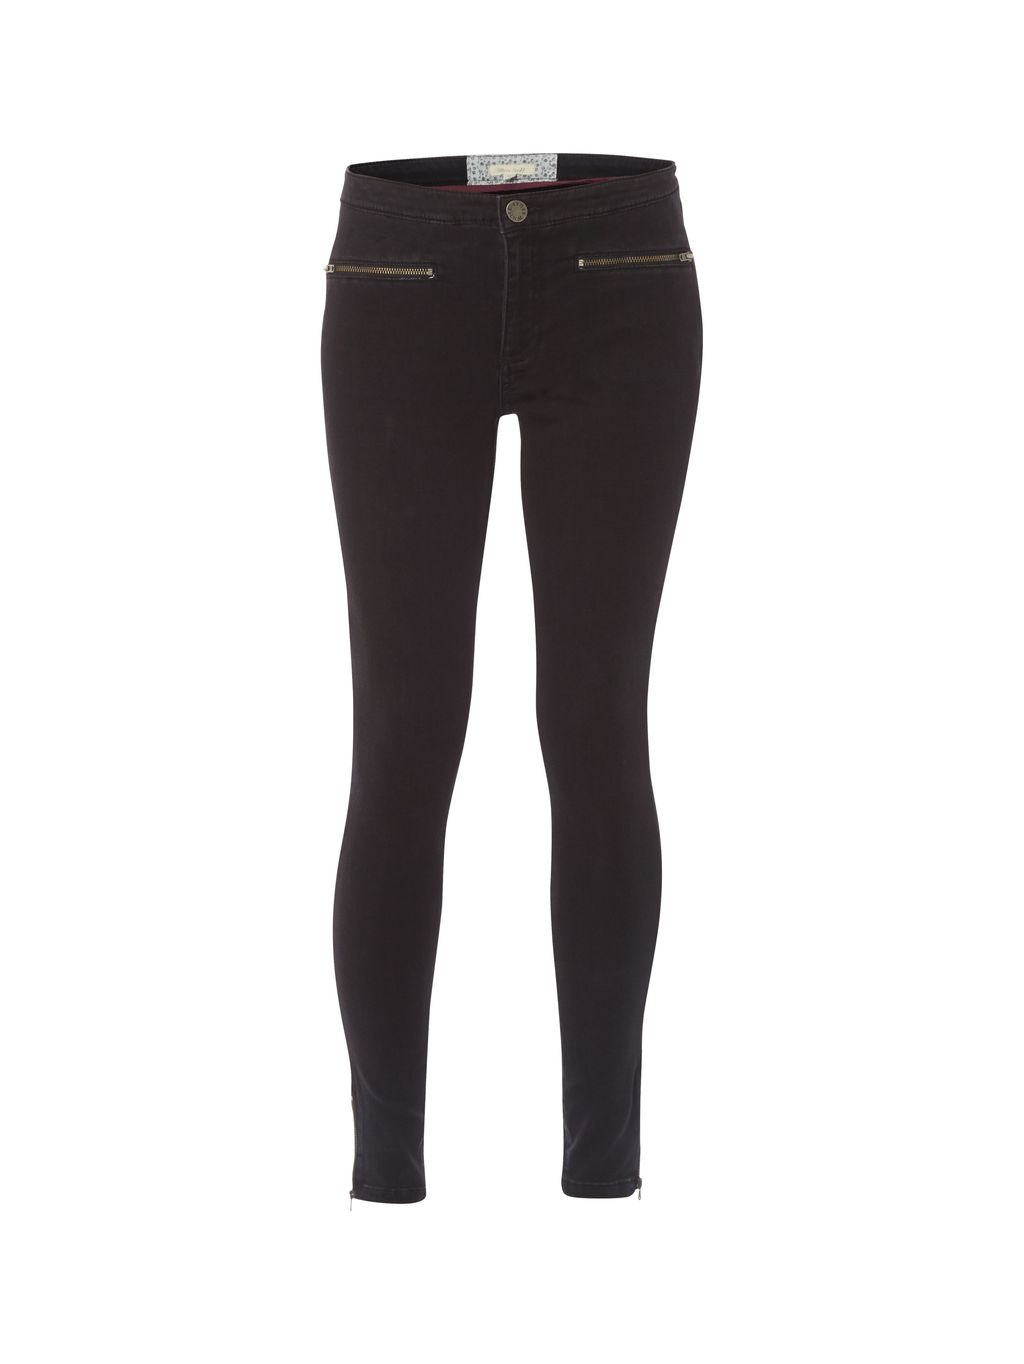 Jenny Zip Legging, Grey - length: standard; pattern: plain; style: leggings; waist: mid/regular rise; predominant colour: charcoal; occasions: casual, creative work; fit: skinny/tight leg; pattern type: fabric; texture group: jersey - stretchy/drapey; season: a/w 2015; wardrobe: basic